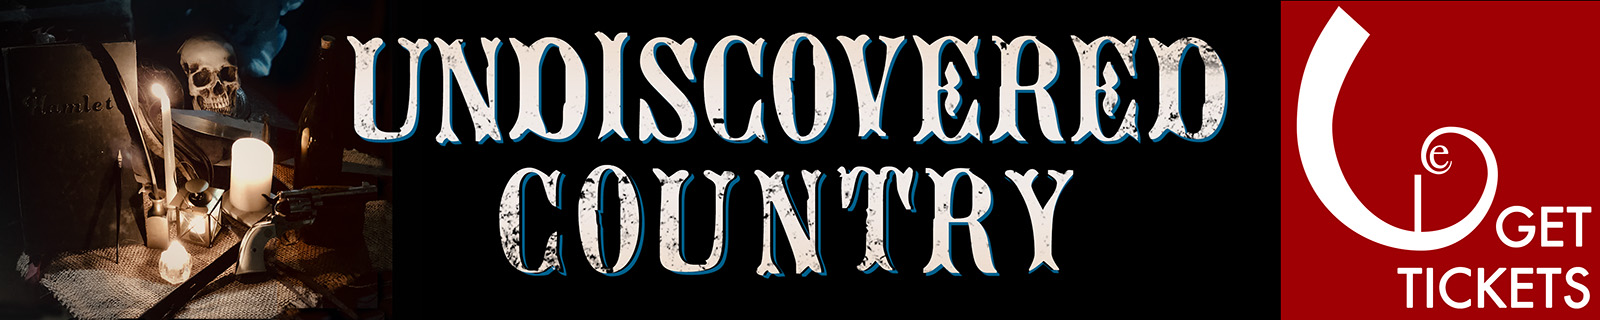 We Players - Undicovered Country 2019 - web banner blue get tickets - 1600px.jpg